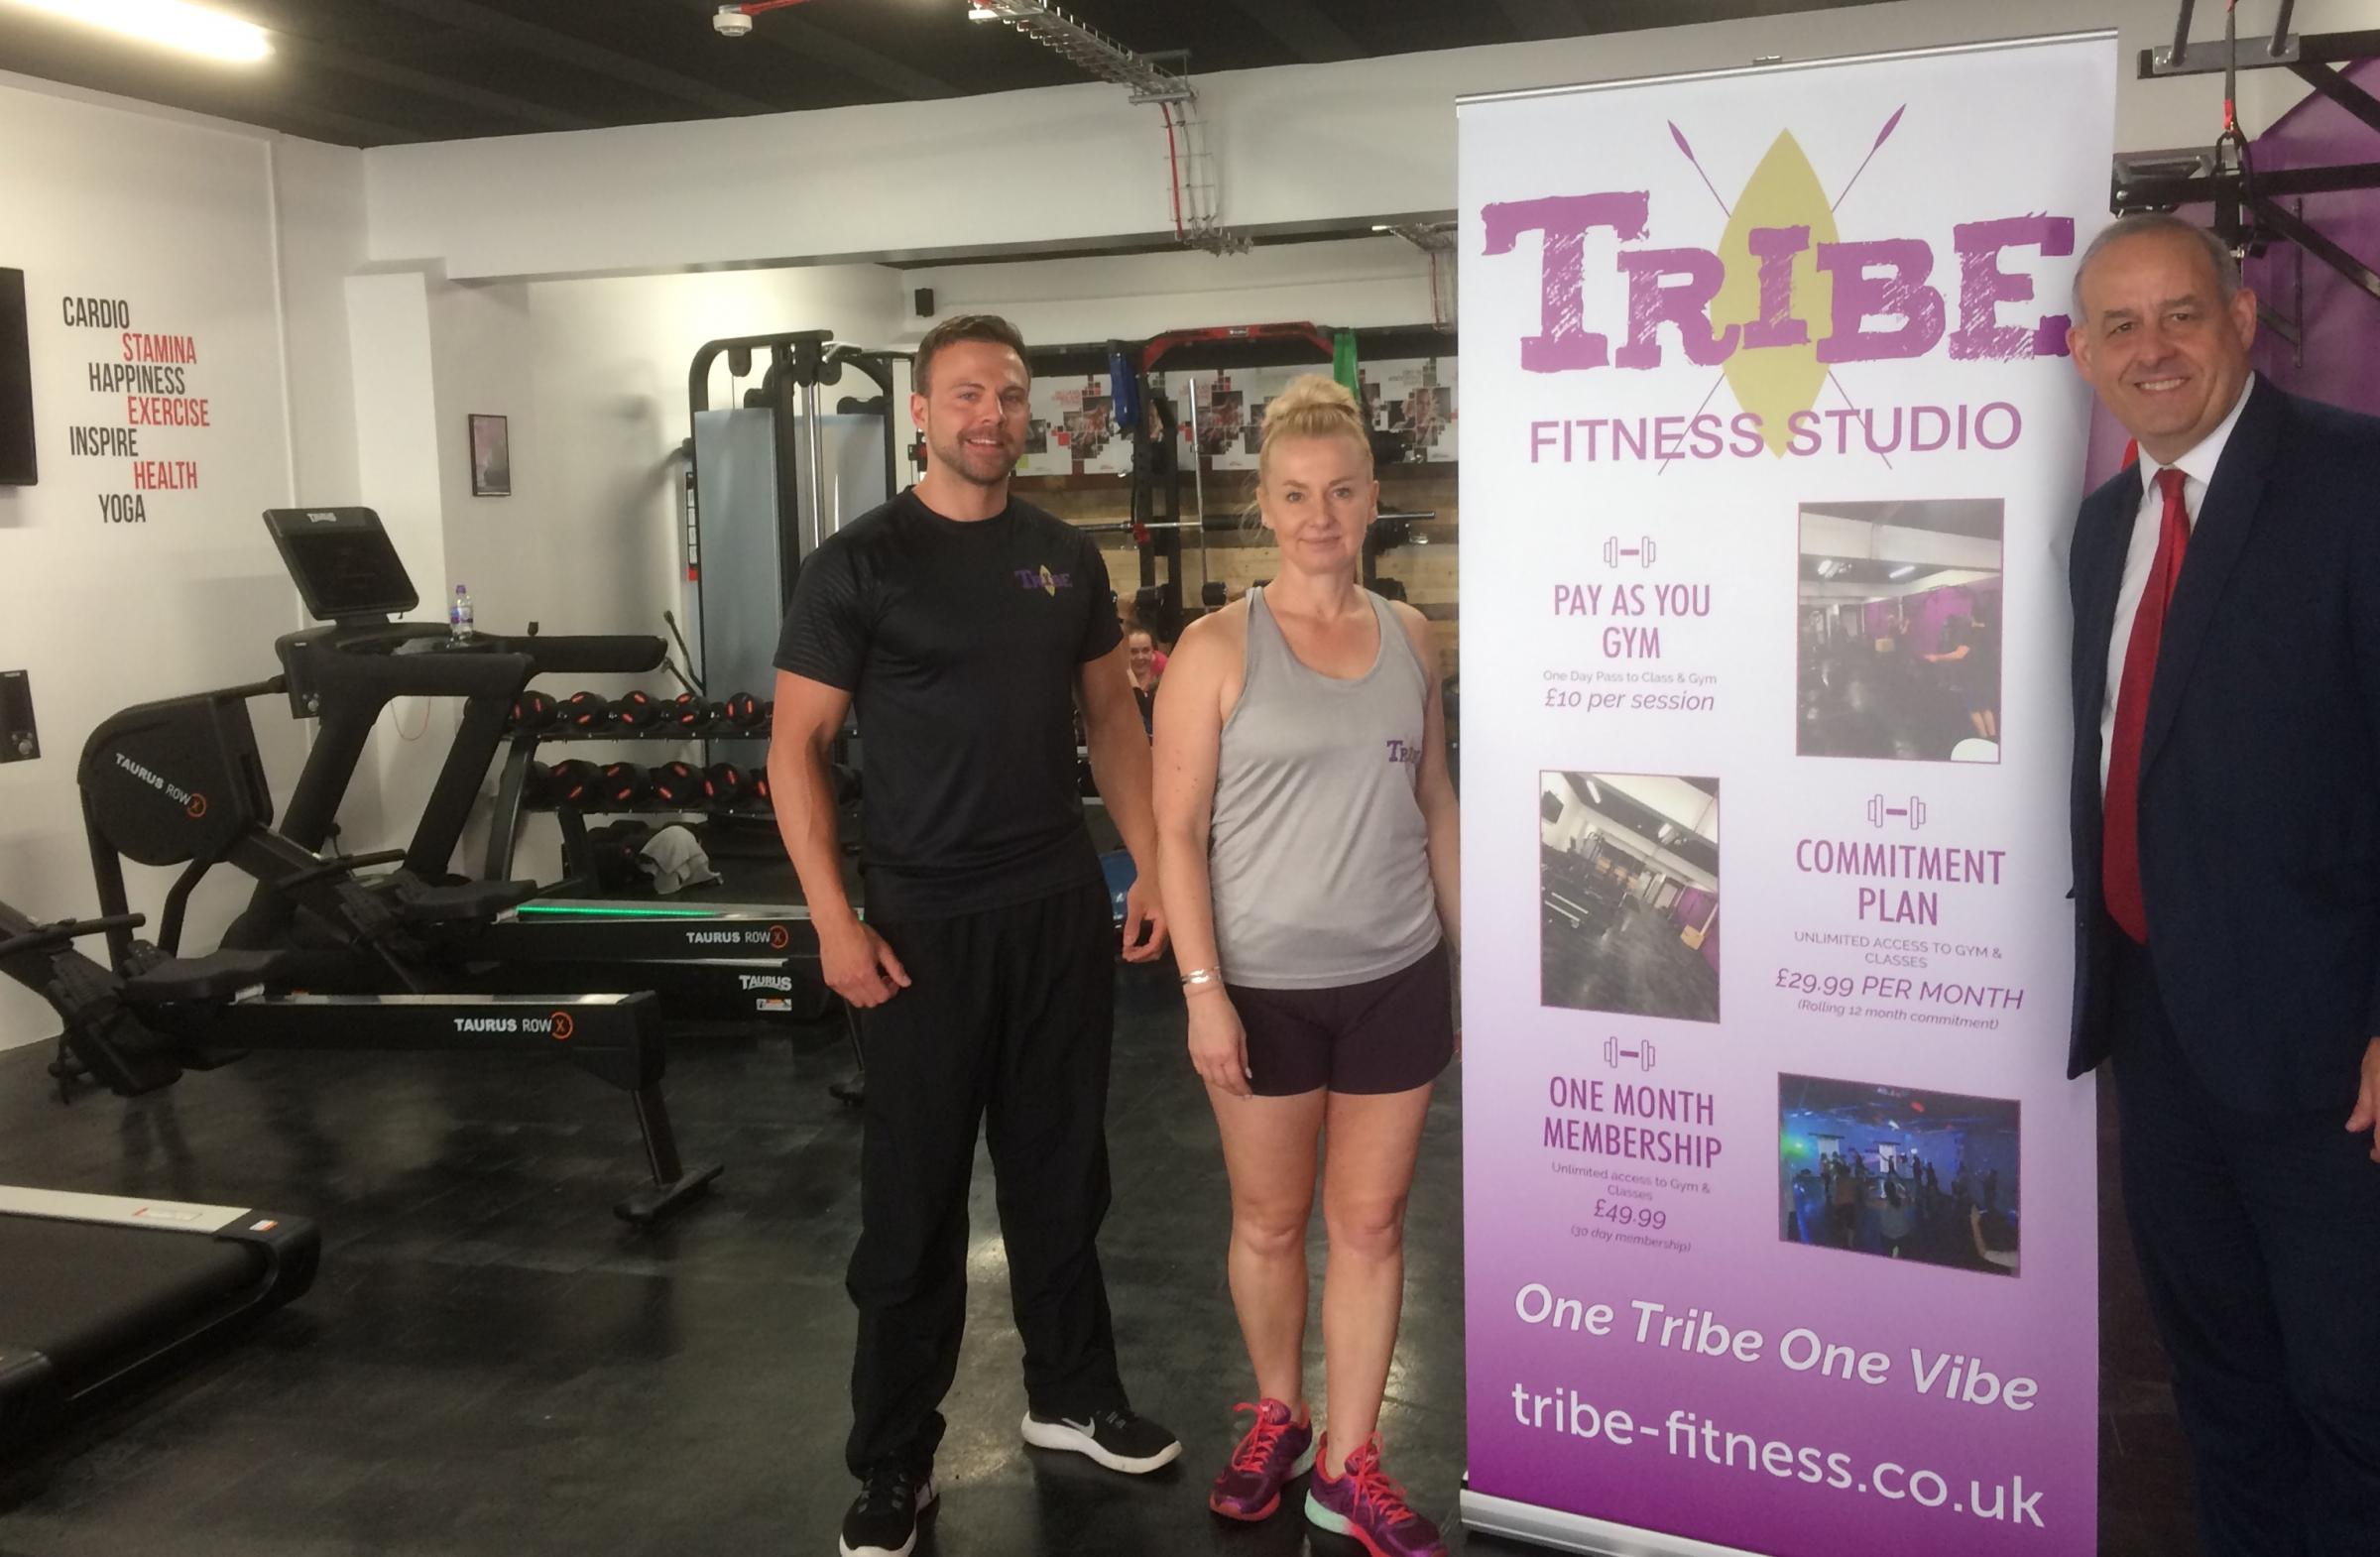 Tribe Fitness in Flint visited by David Hanson MP